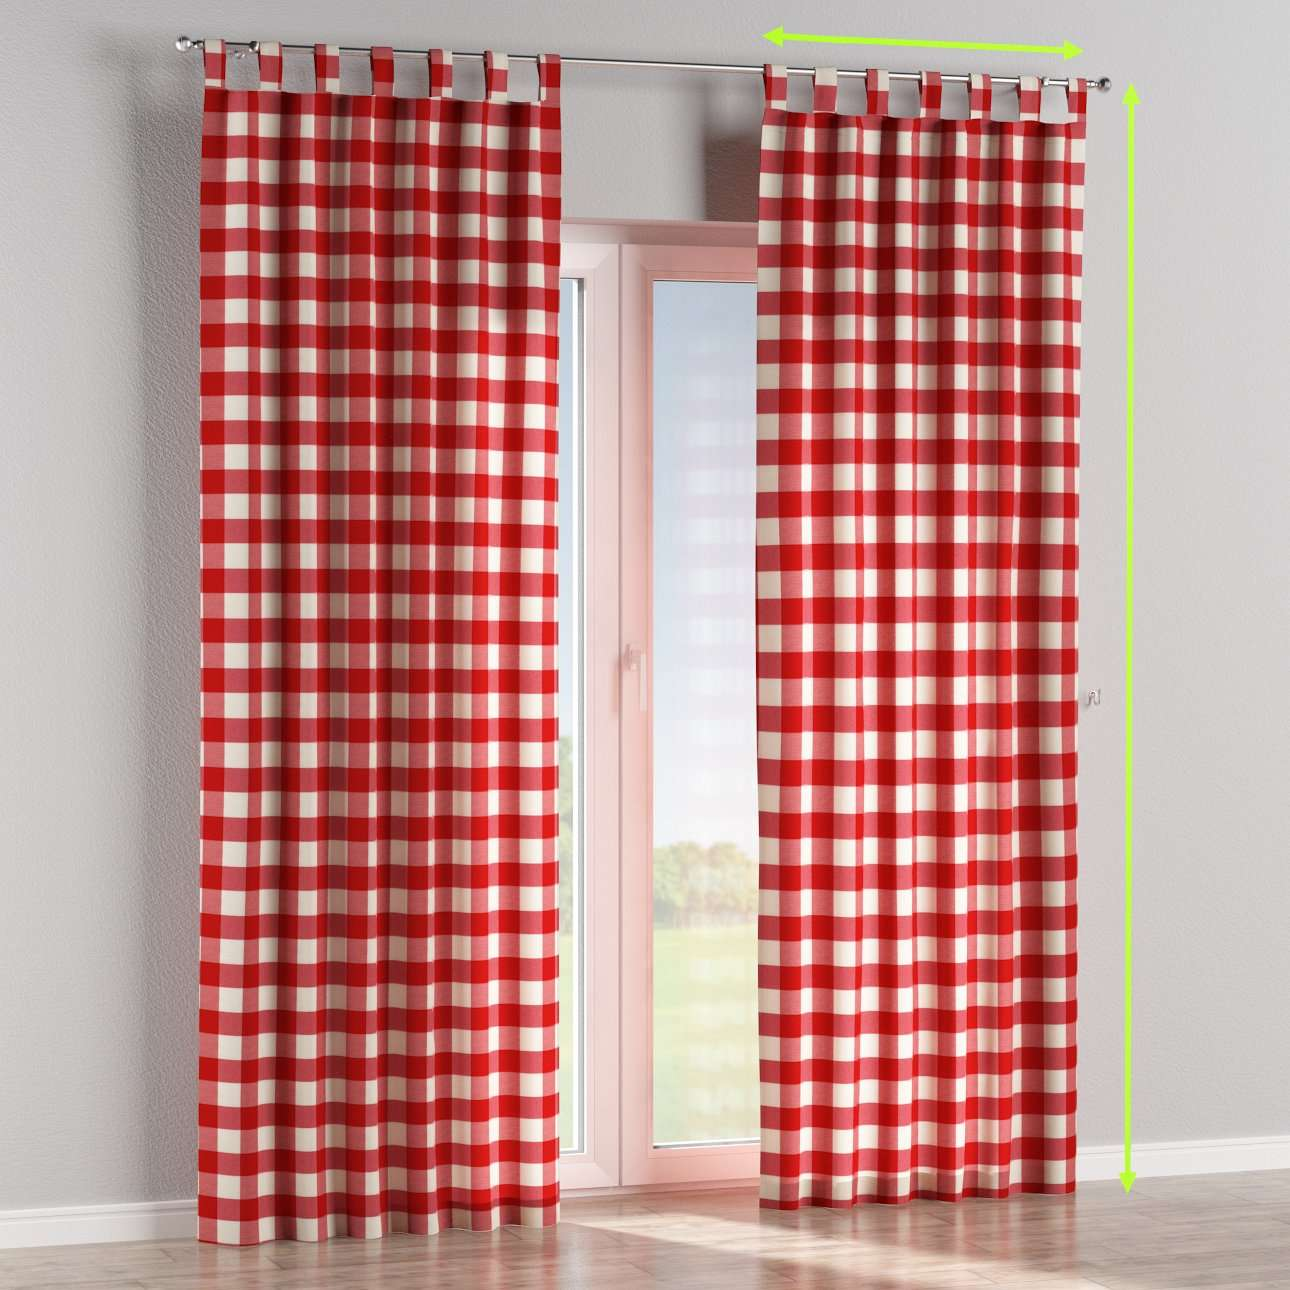 Tab top lined curtains in collection Quadro, fabric: 136-18